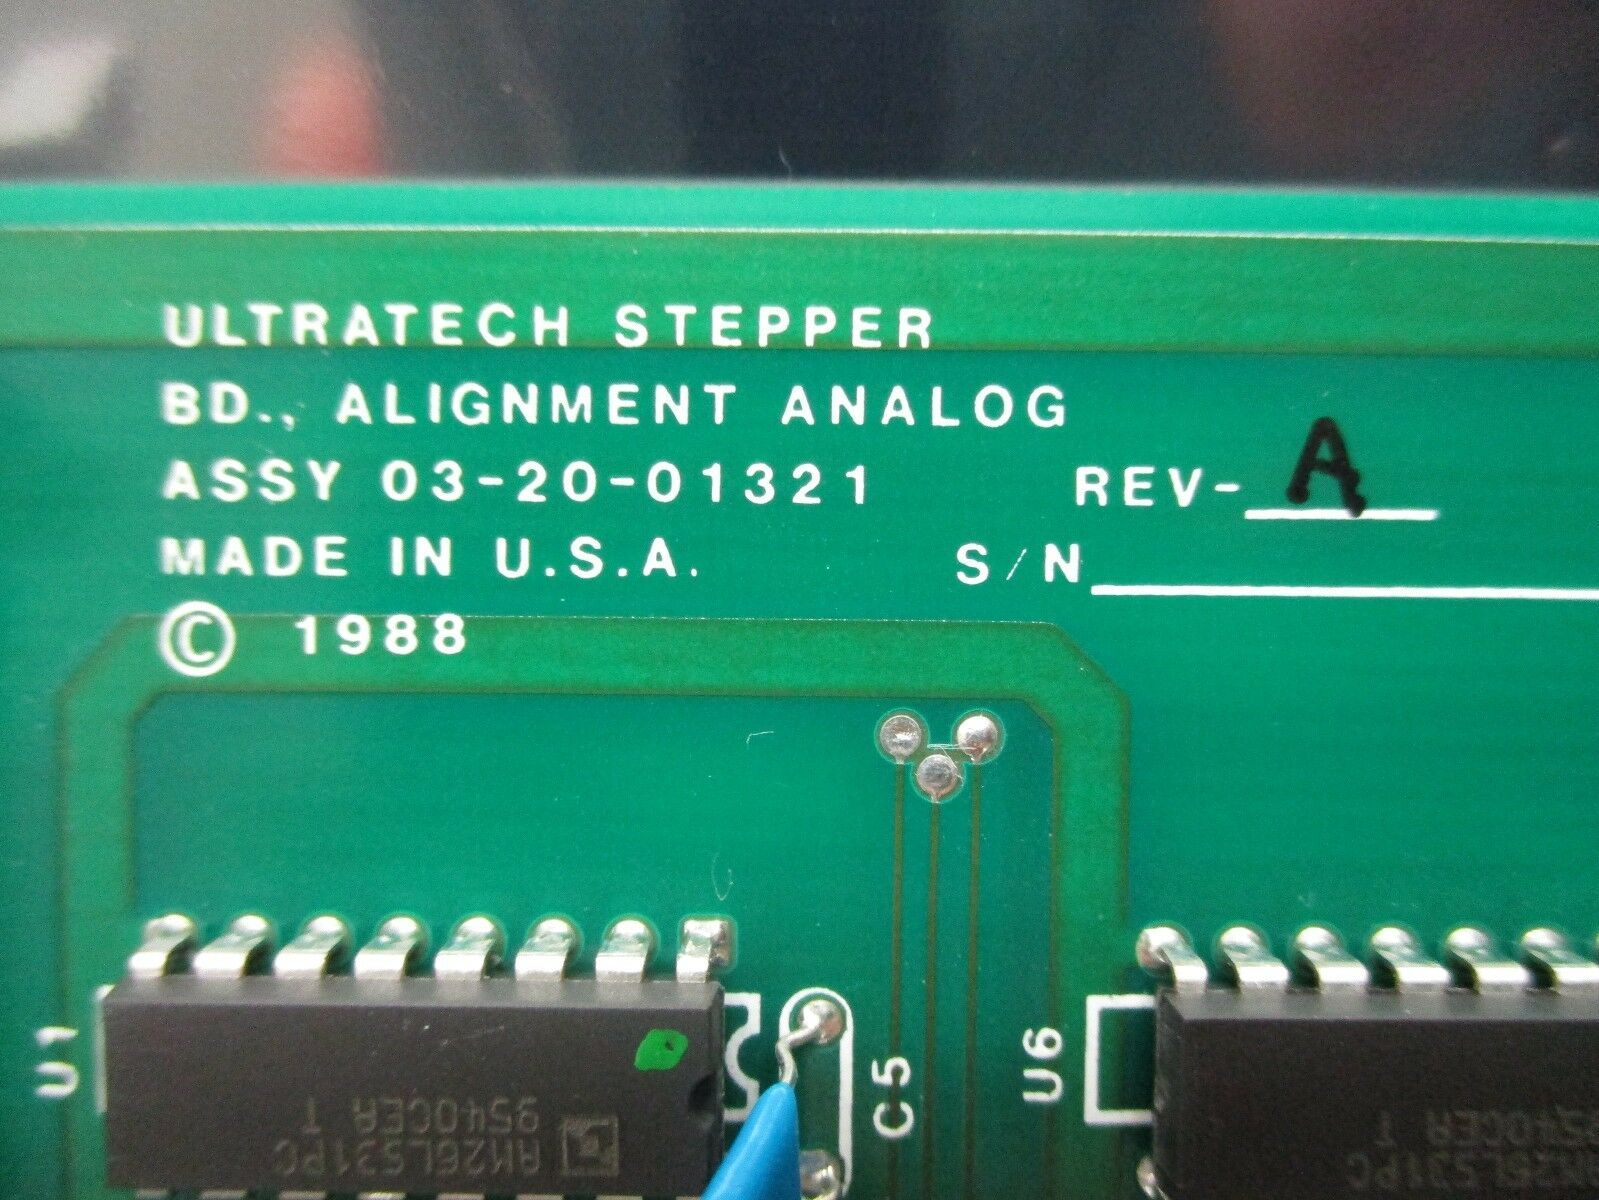 Ultratech Stepper 03-20-01321 Analog Alignment Board PCB Rev. A 4700 Titan Used